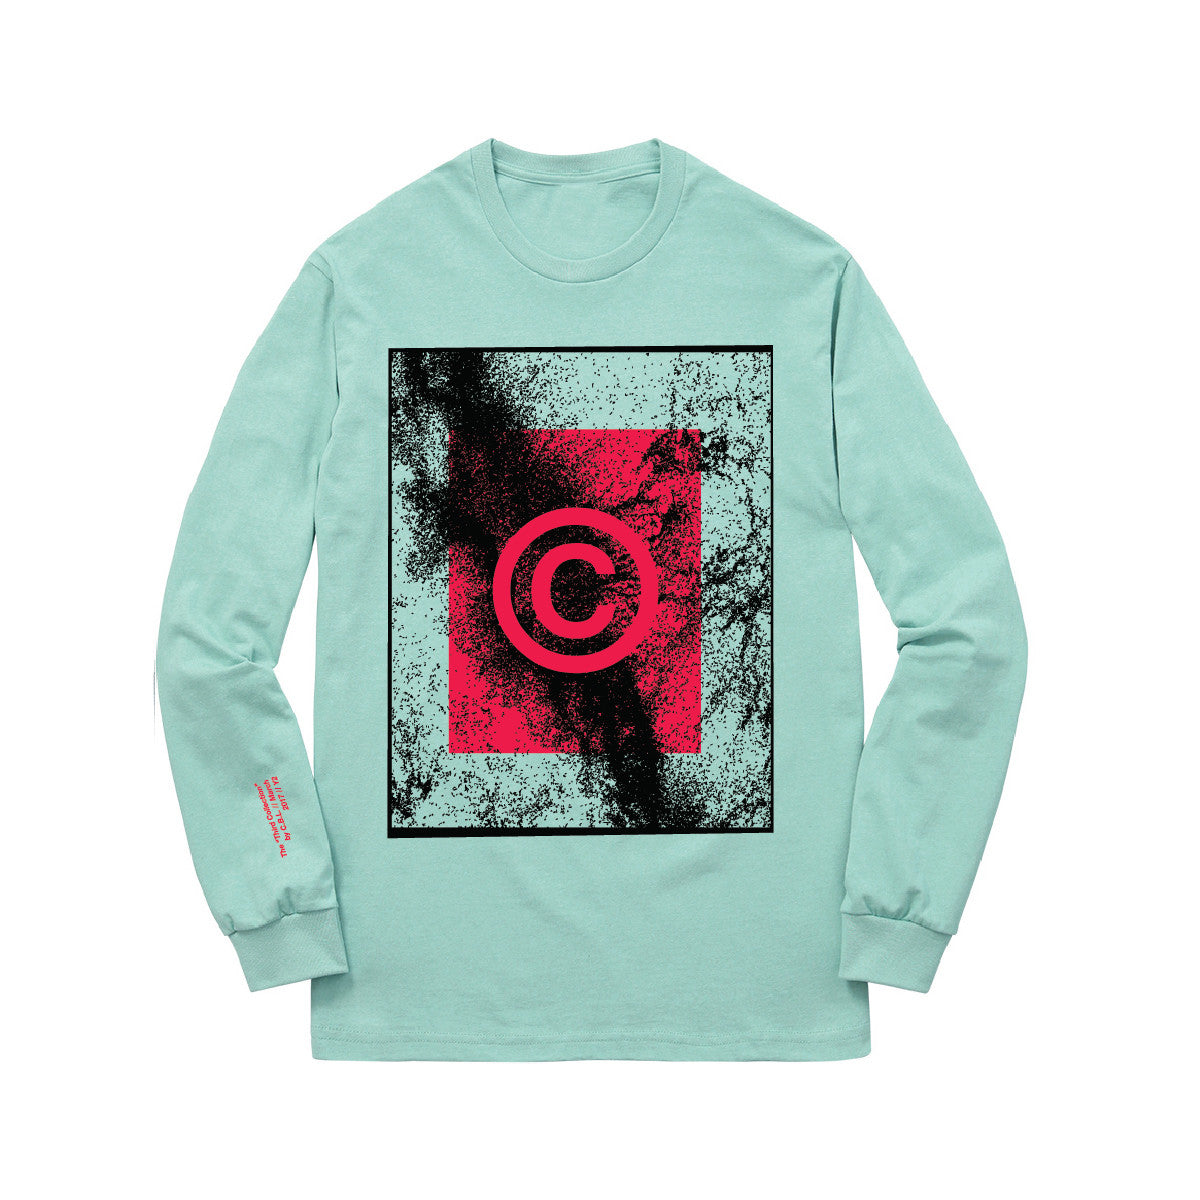 WAVES - LONG SLEEVE - MINT